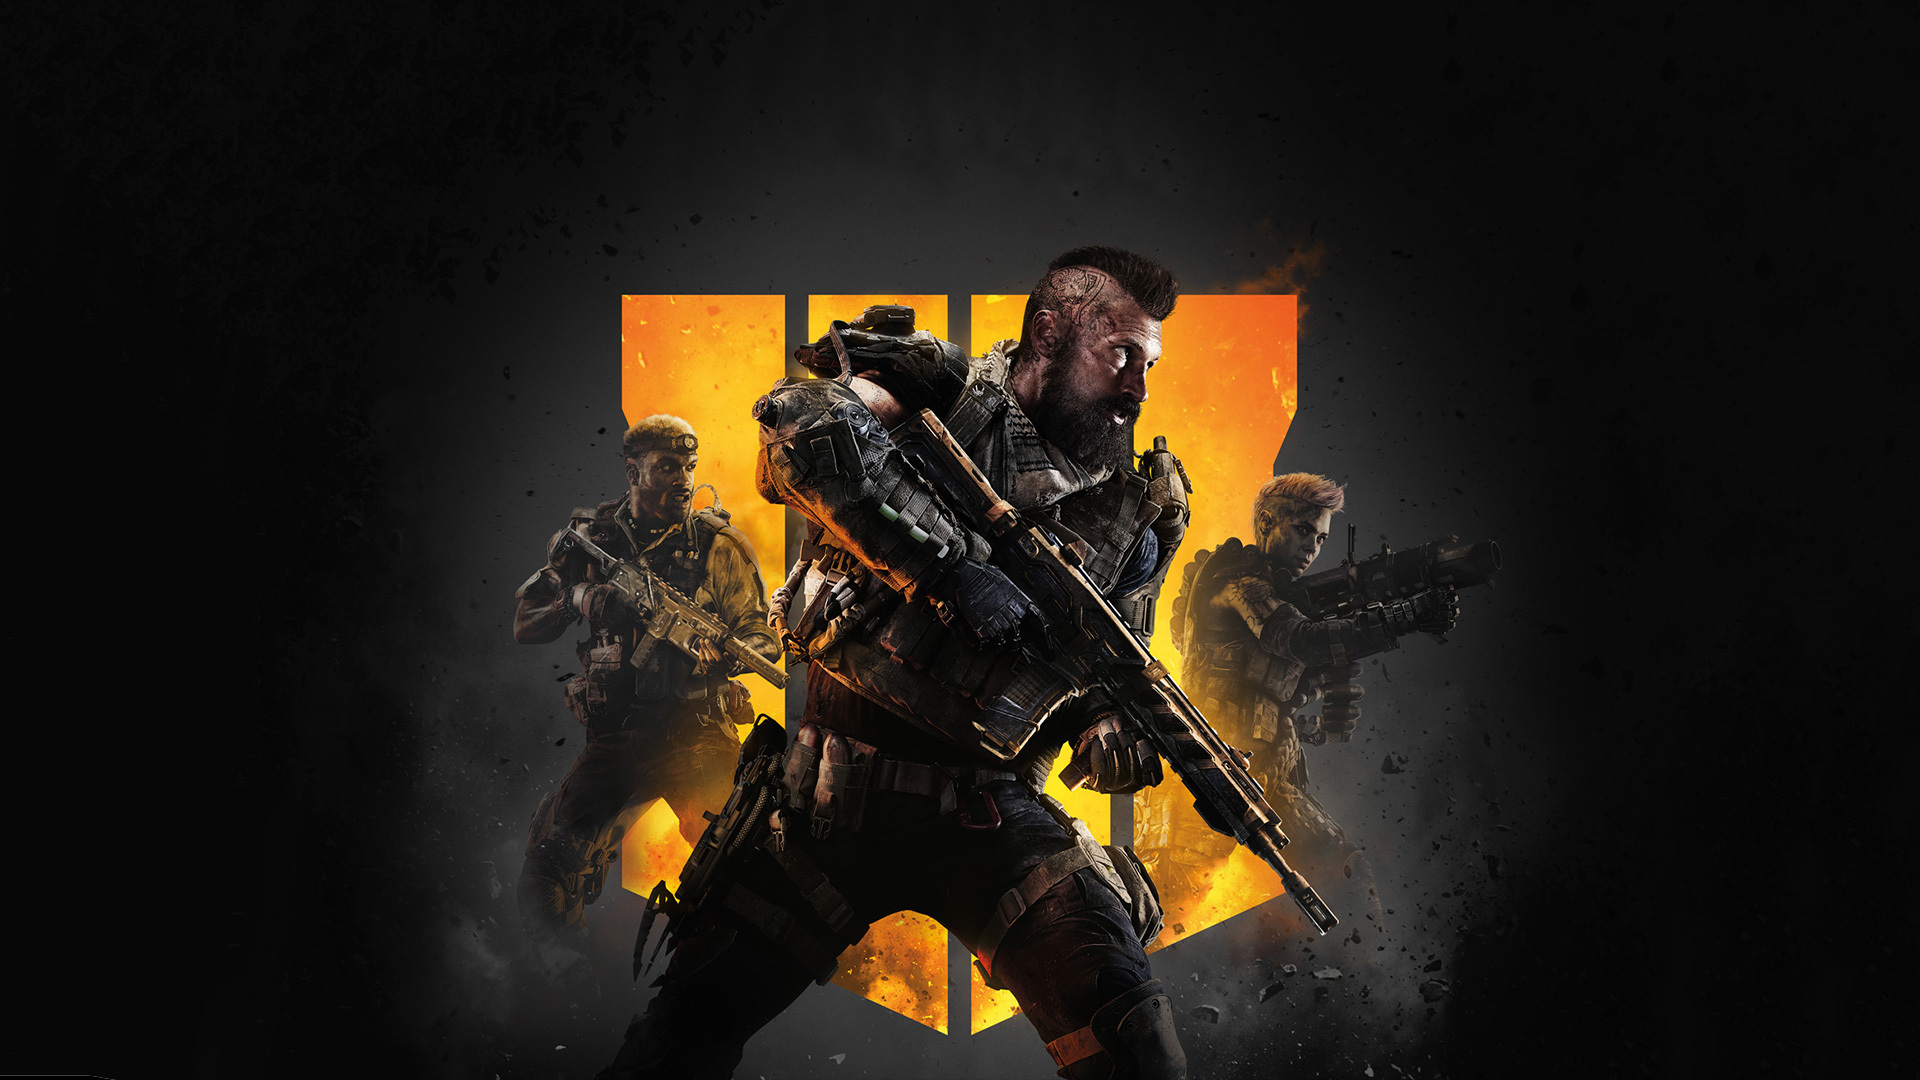 Latest Cod Black Ops 4 Patch Brings Nuketown To Pcxo And Offers